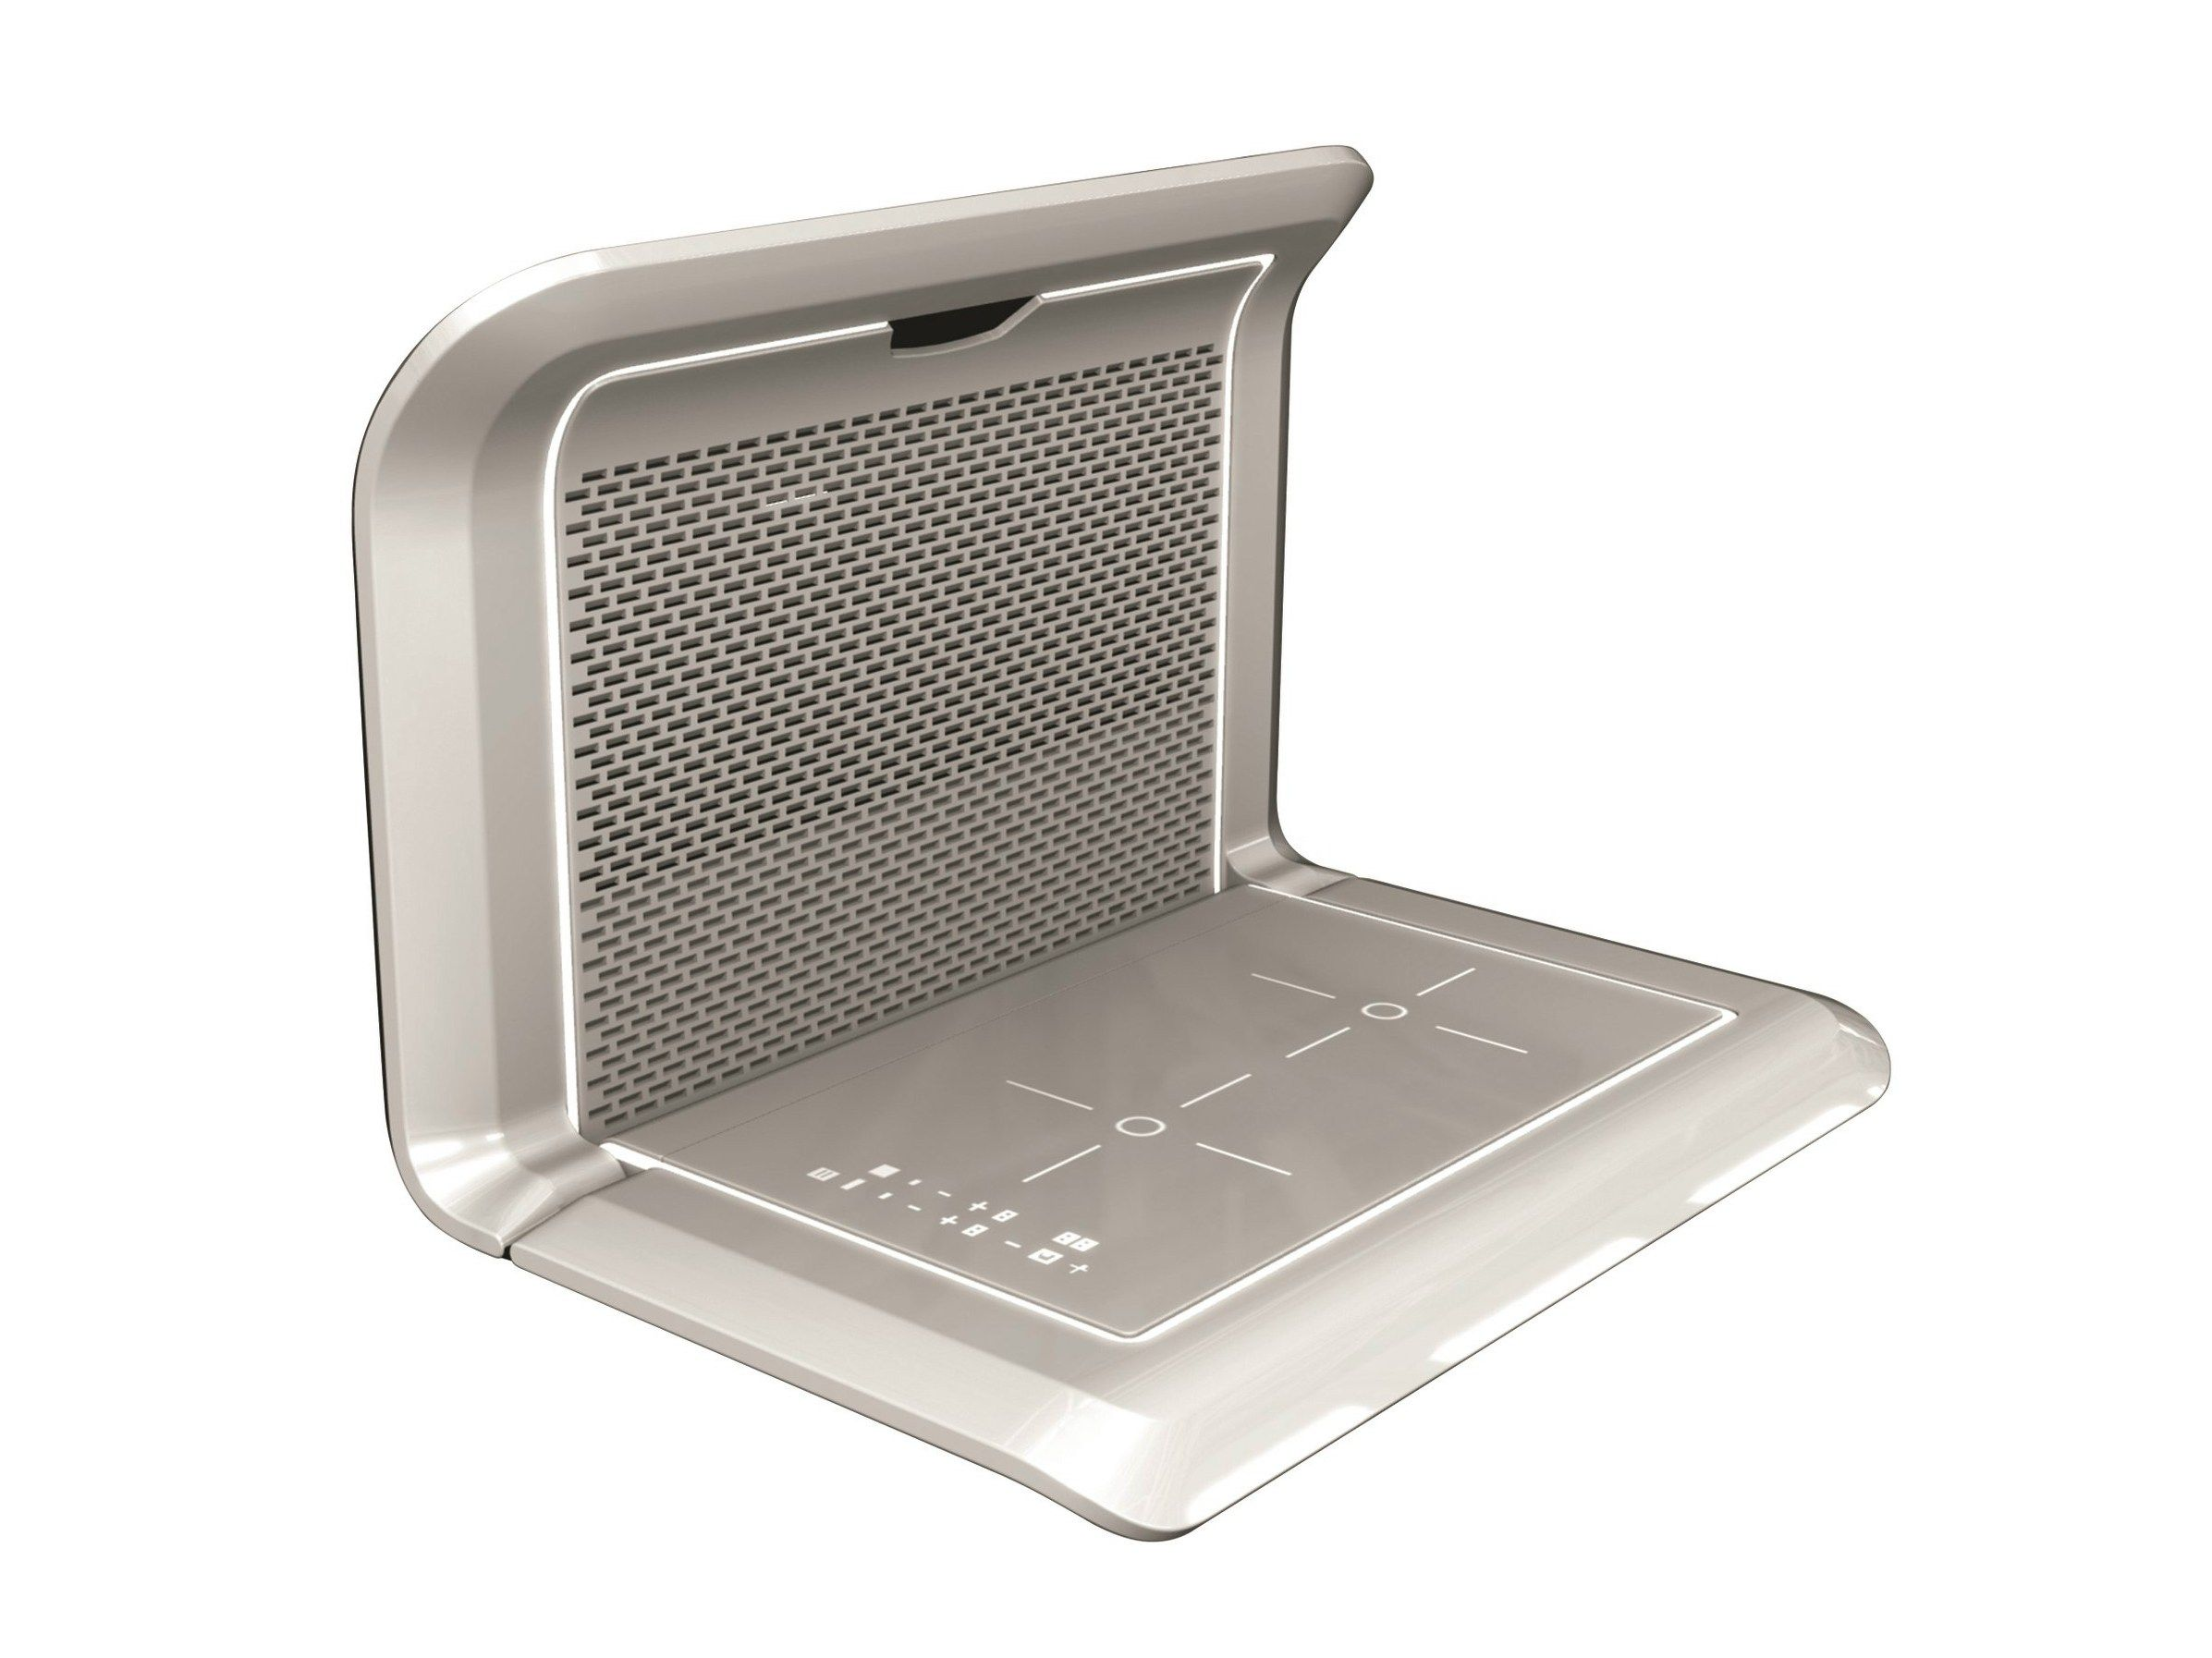 Portable Cooker Hood Hob Icon Smart Design Line By Faber Design Made Studio Kitchen Extractor Fan Exhaust Fan Kitchen Kitchen Extractor